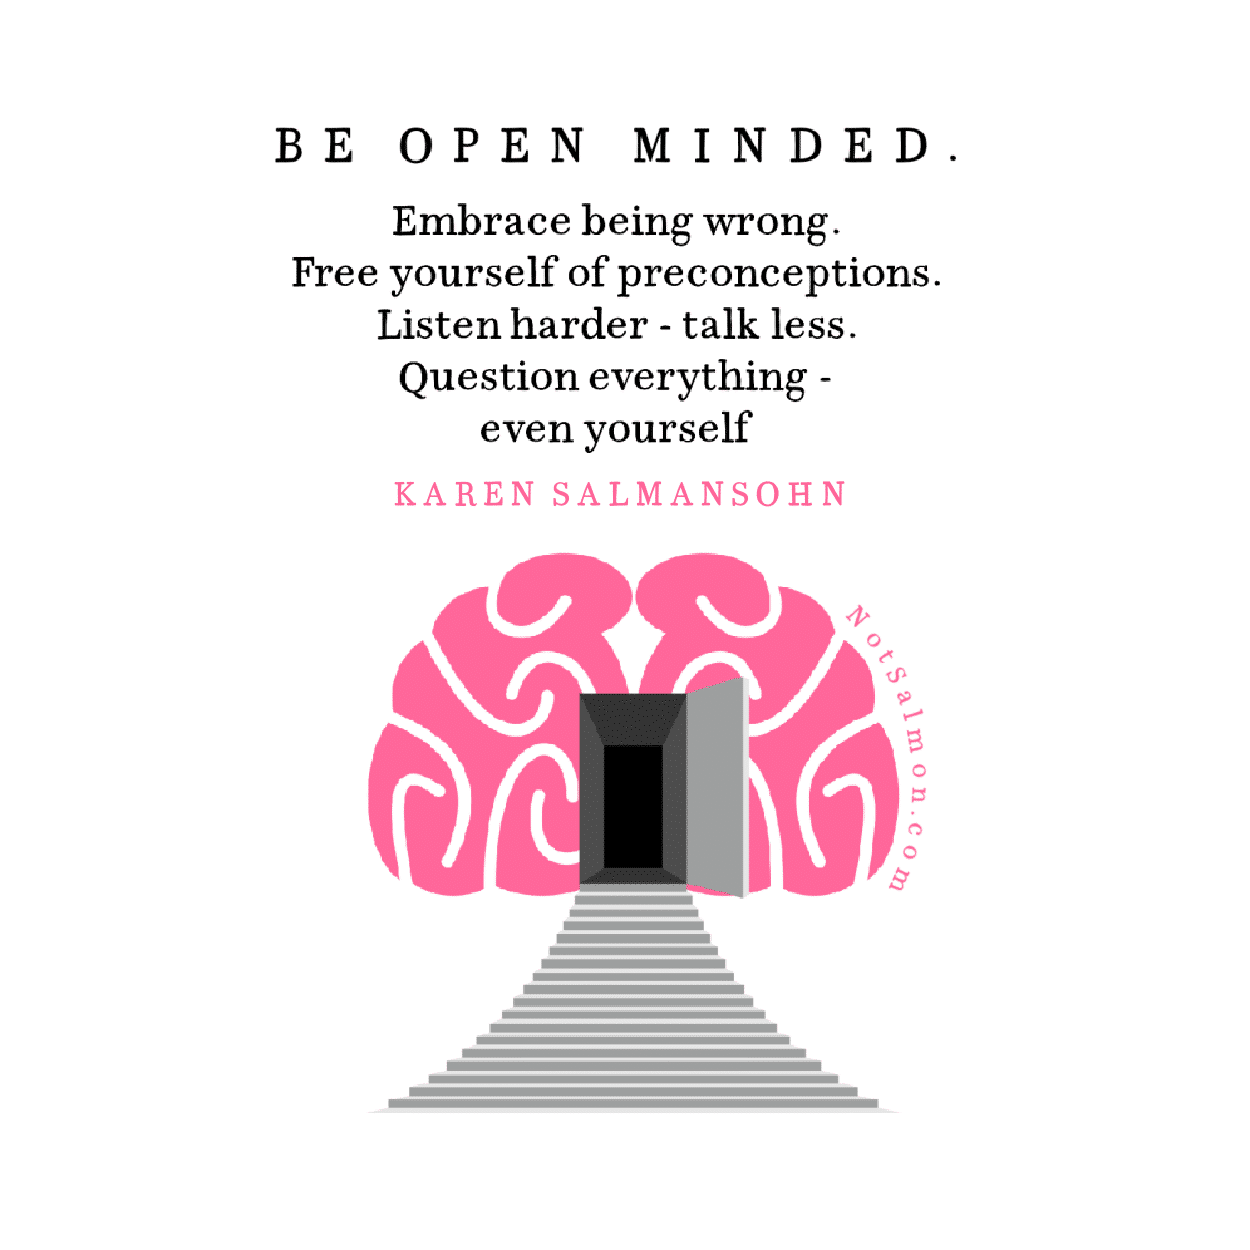 being strong quotes and open minded to embrace being wrong